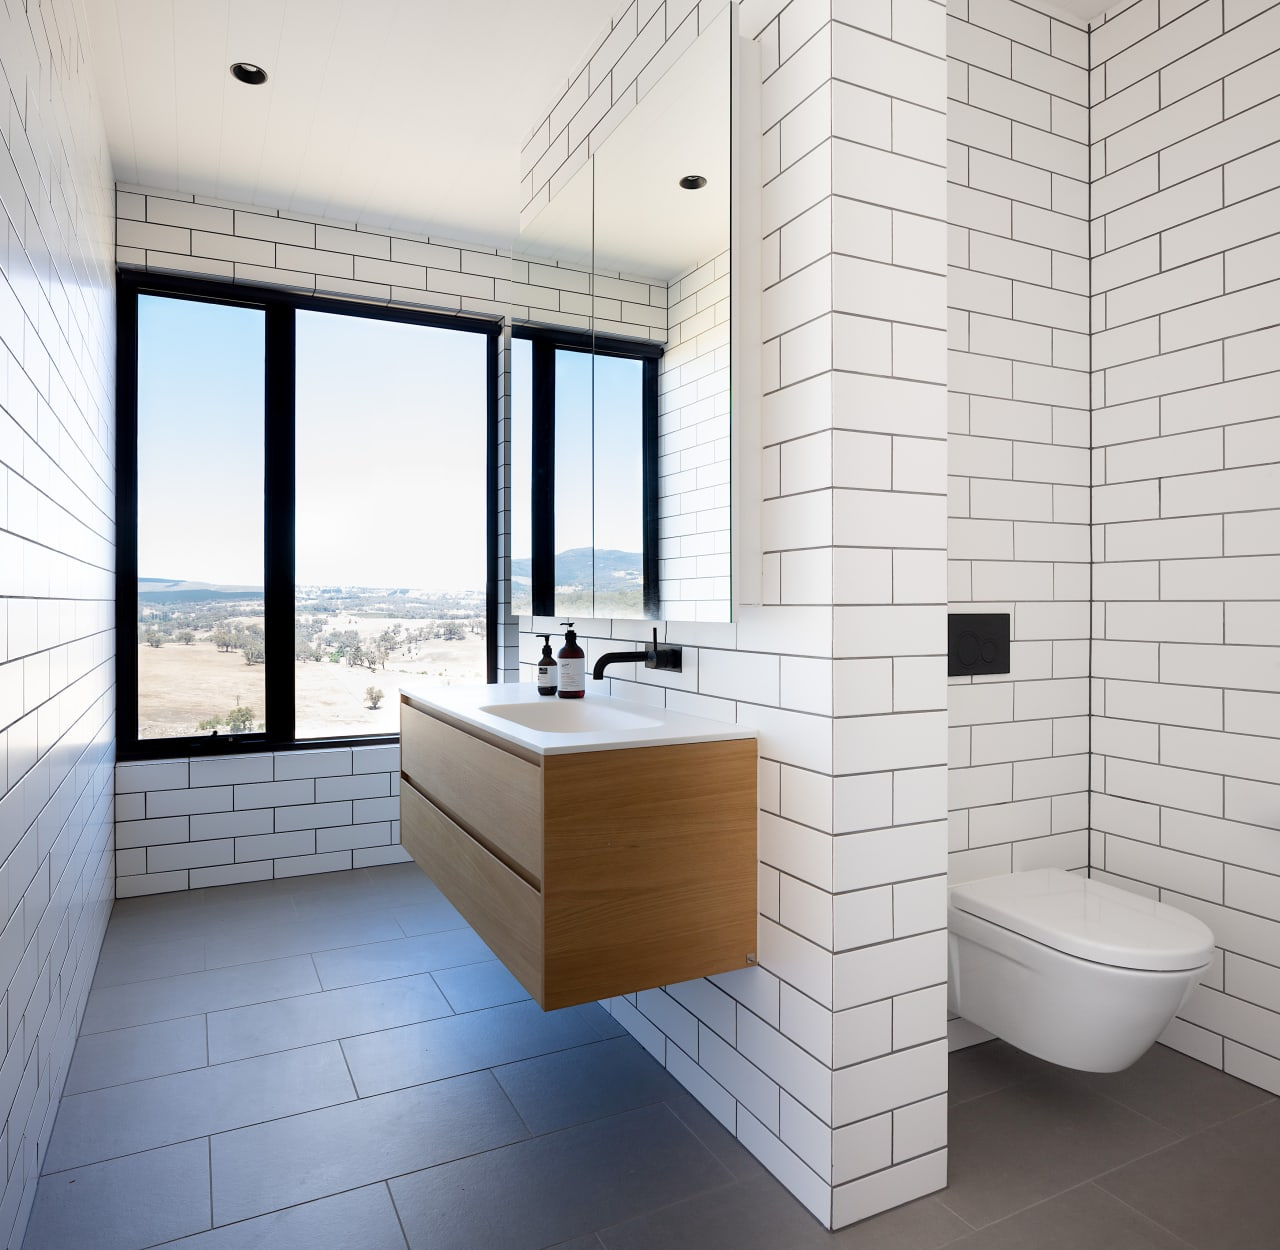 9 Design Tips for an Ergonomic Bathroom  Trends